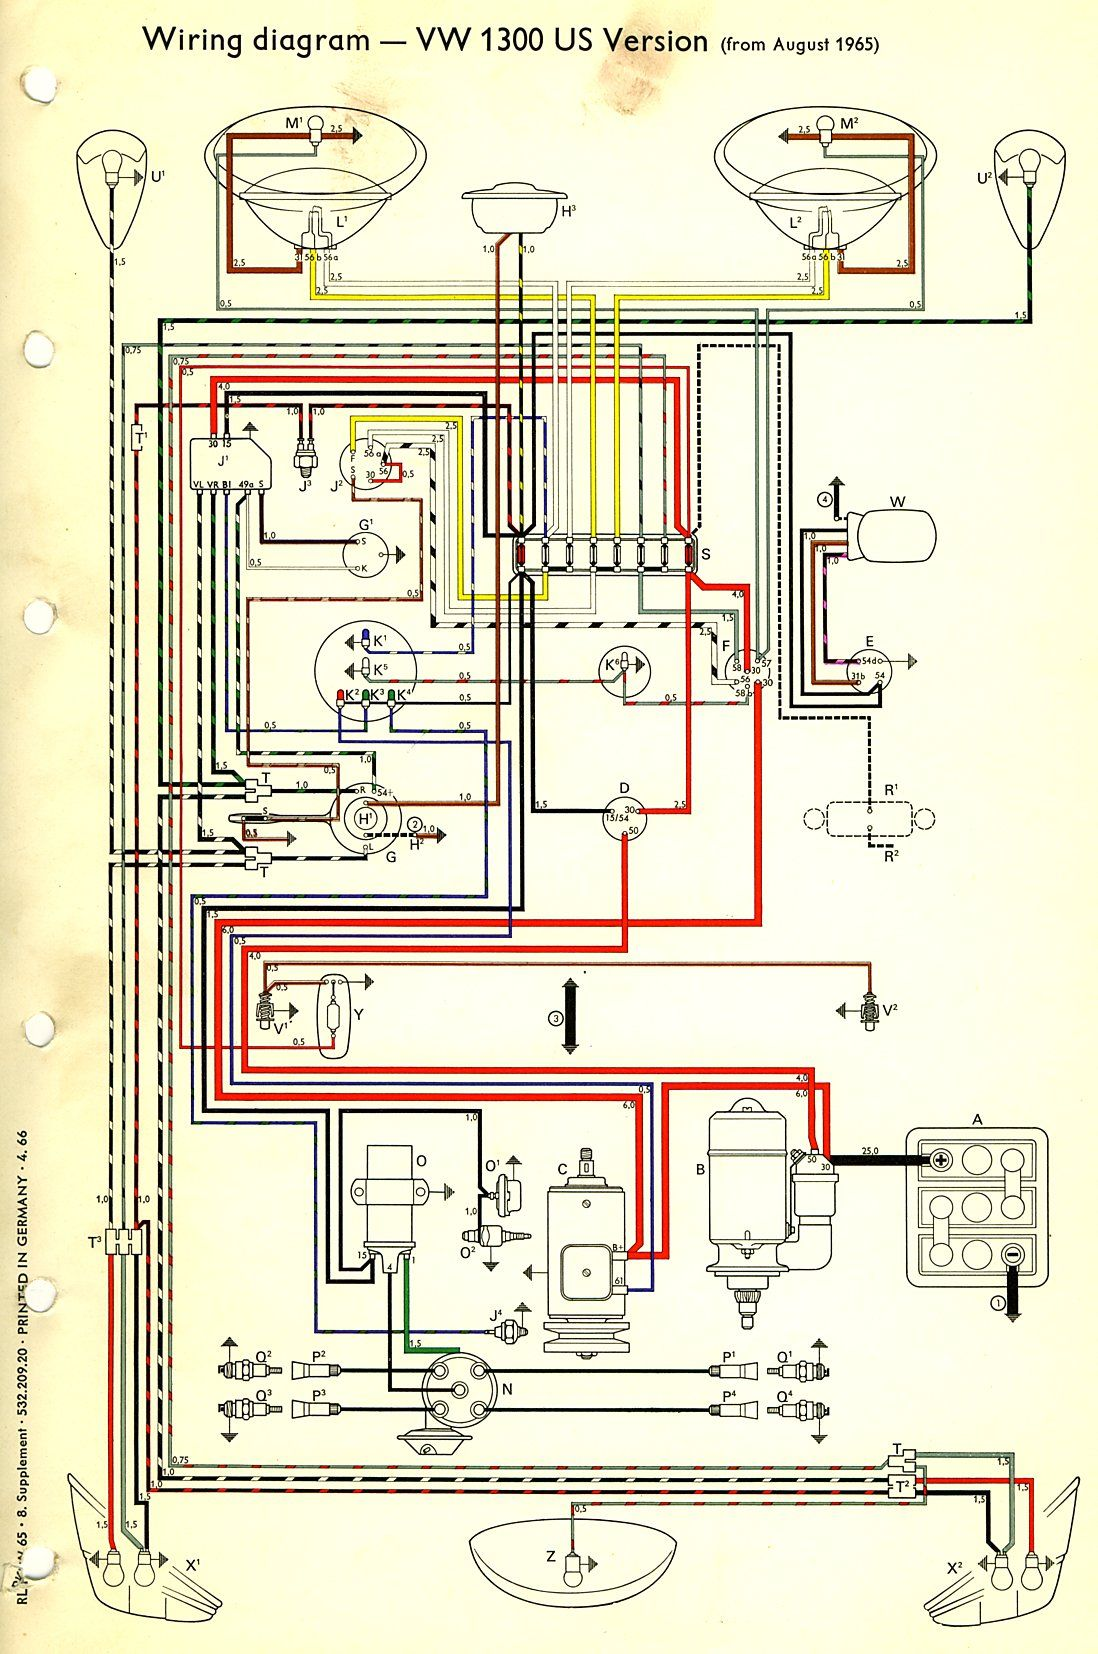 mini buggy wiring diagram dune buggy wiring schematic - google search | 69 bug or 69 ... #7